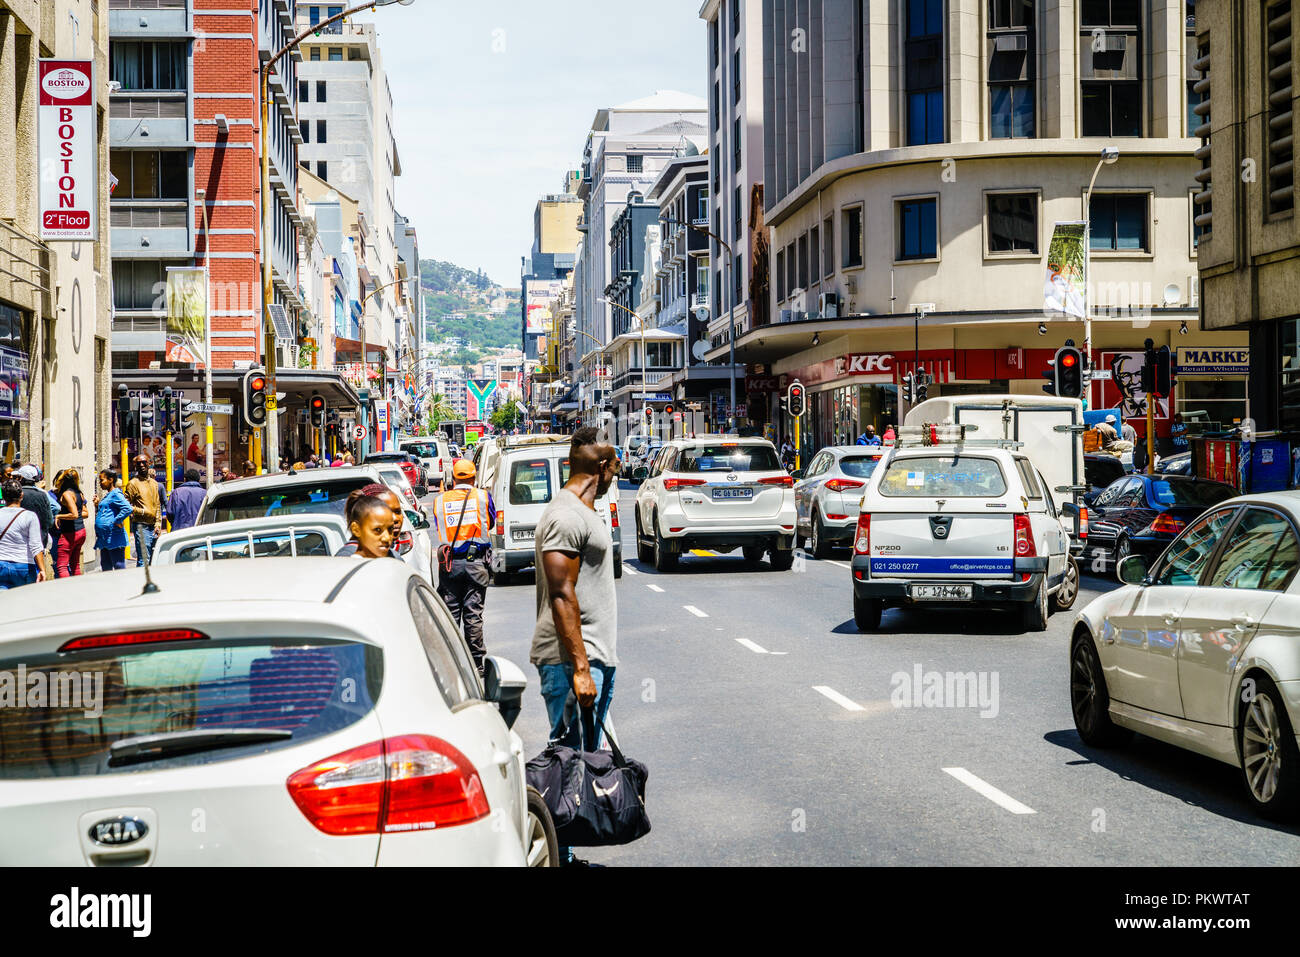 Cape Town, South Africa, February 9, 2018: Busy street with traffic in downtown Cape Town, South Africa - Stock Image